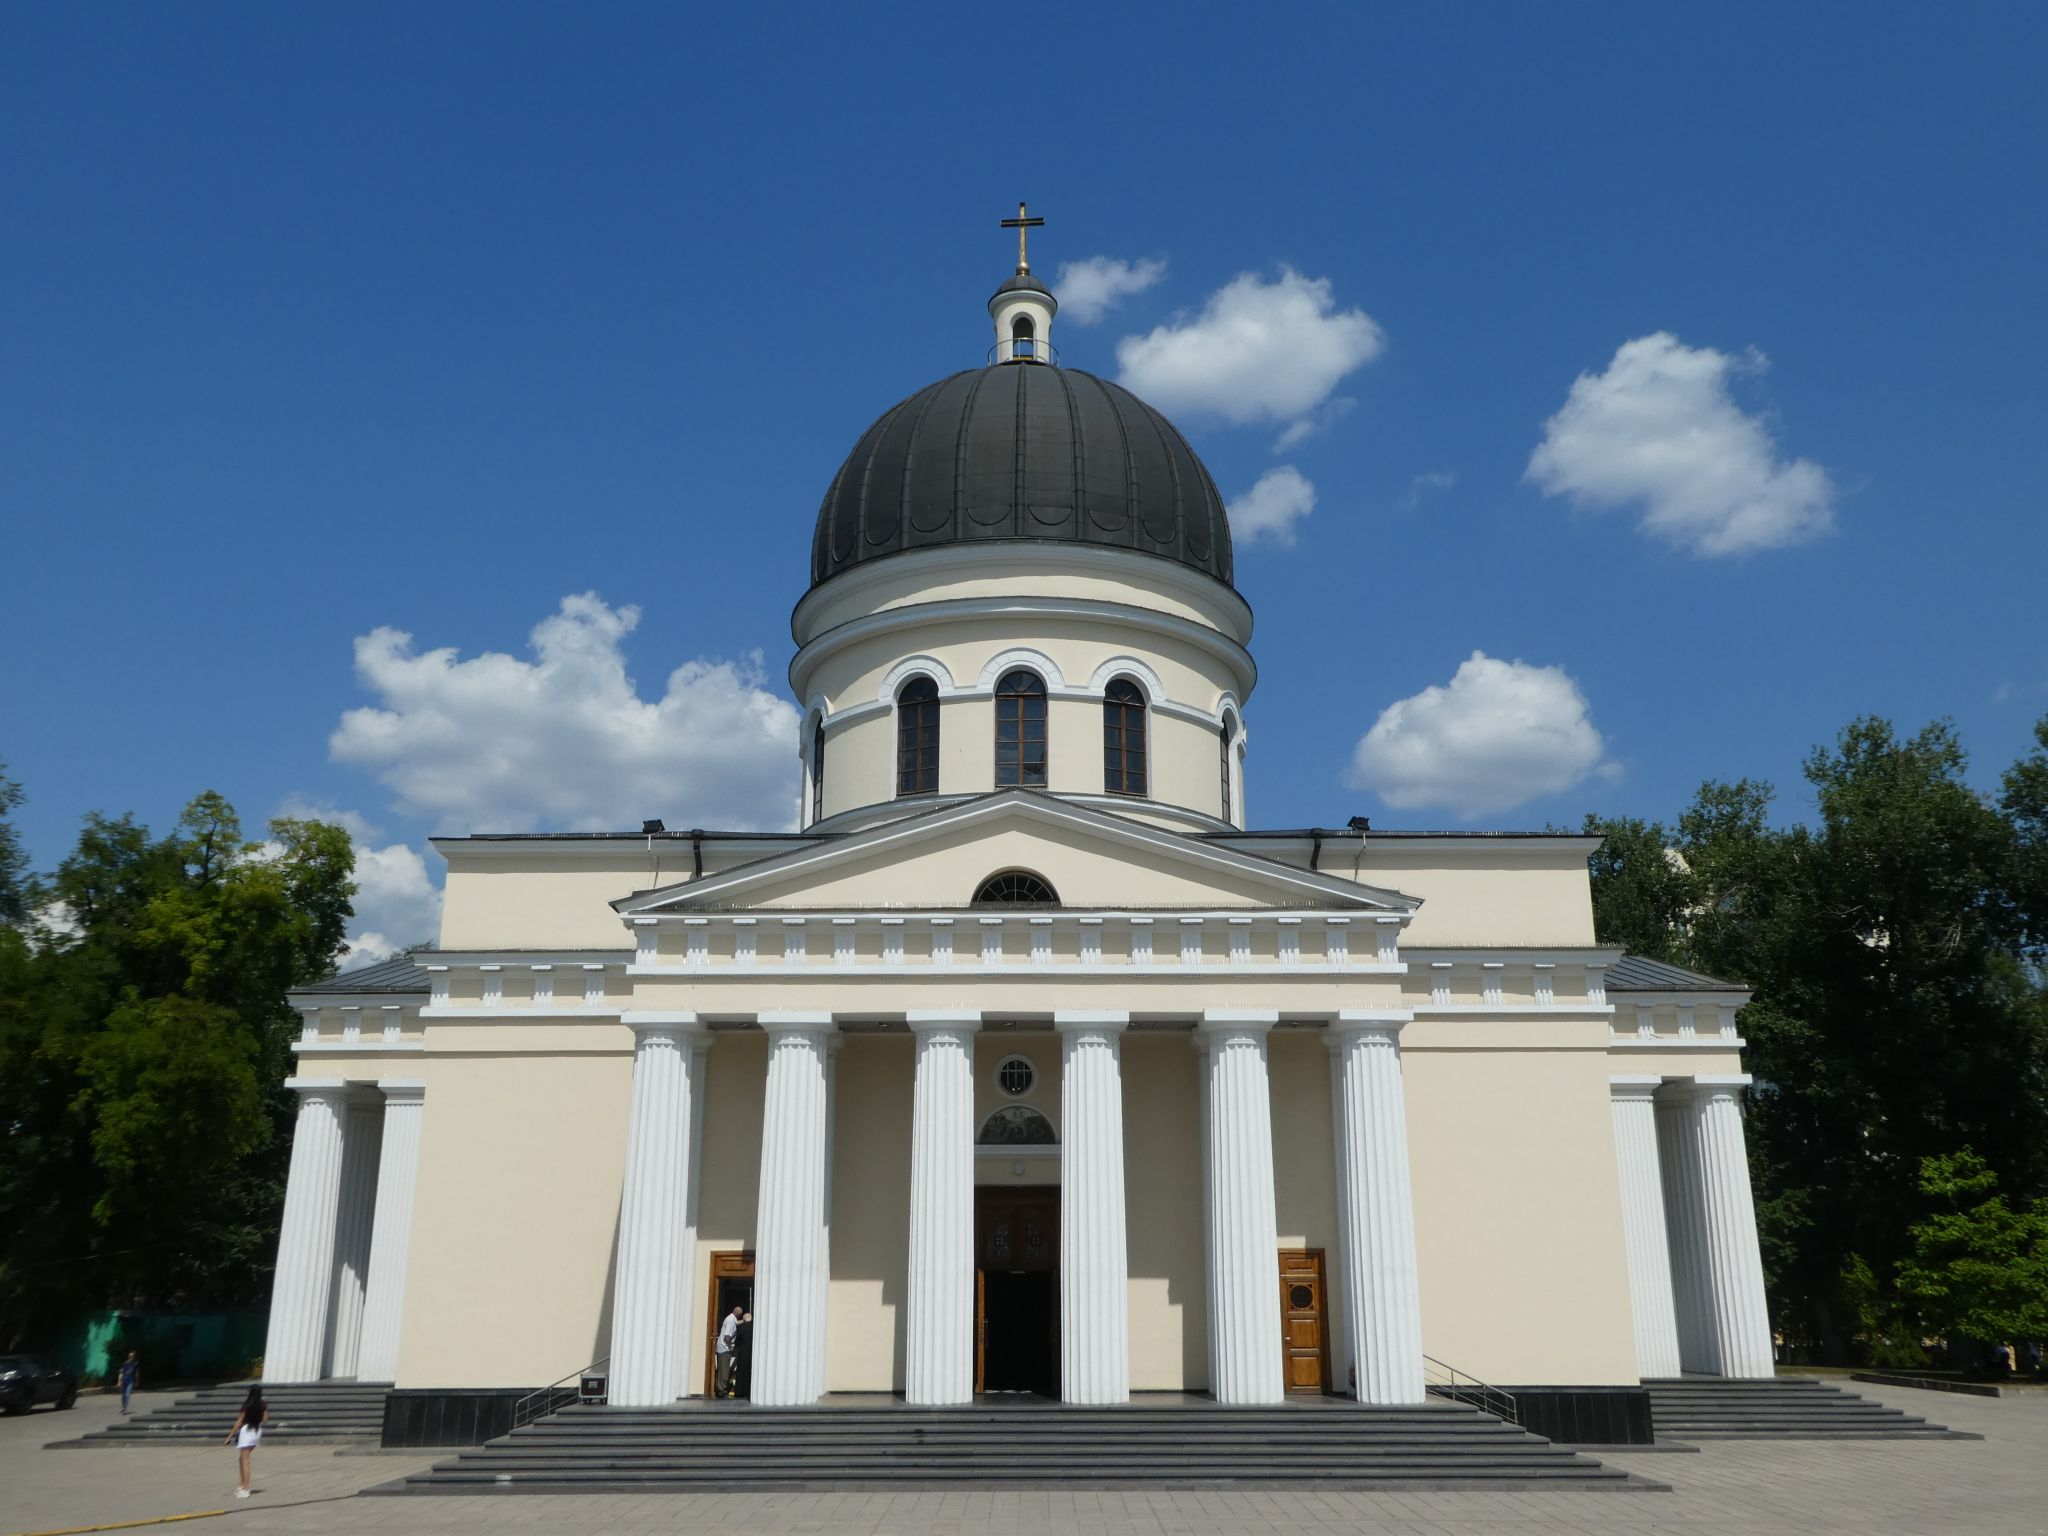 Chisinau and beyond (25 July to 1 August 2019)